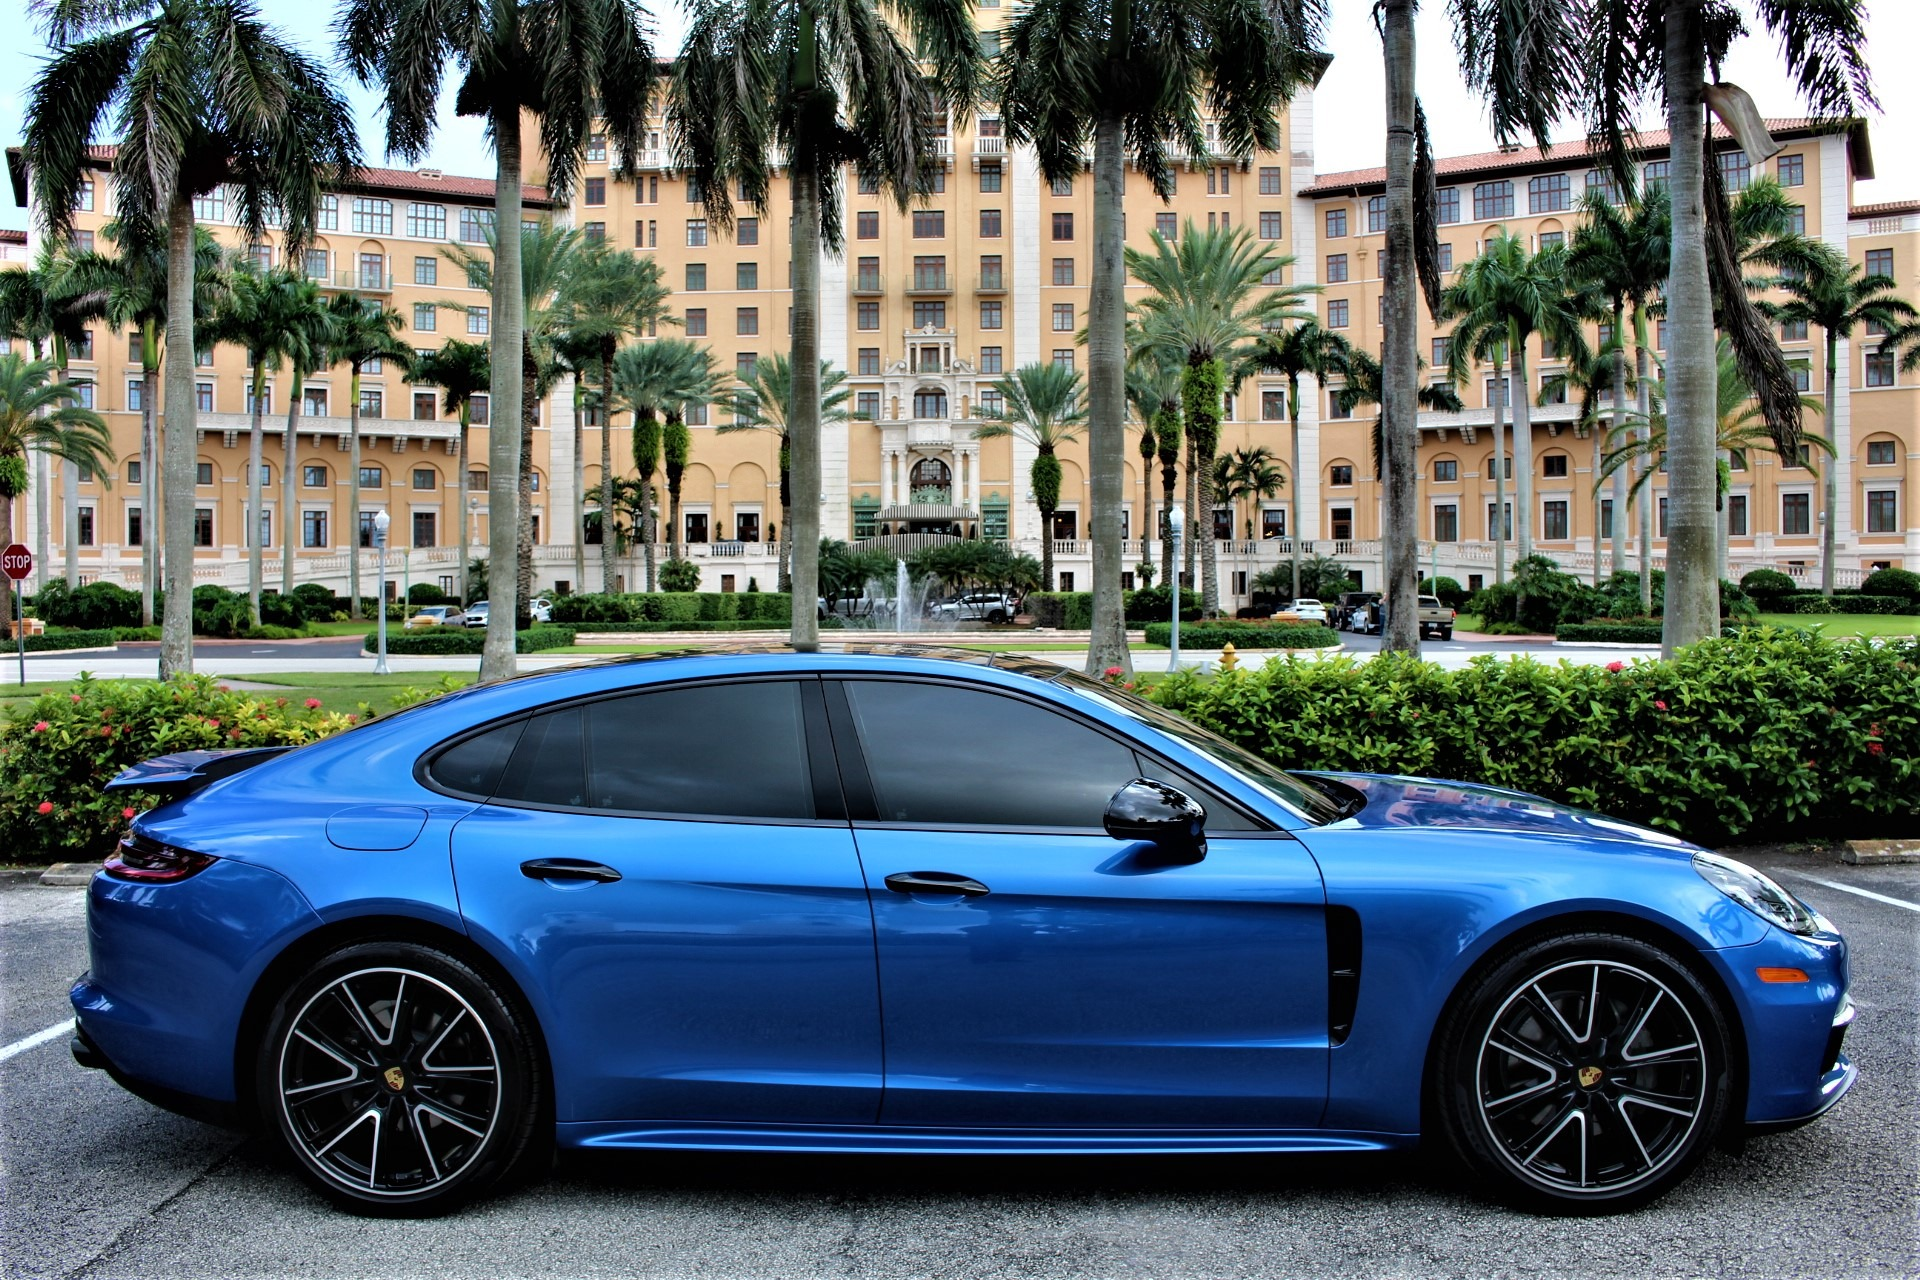 Used 2018 Porsche Panamera 4S for sale Sold at The Gables Sports Cars in Miami FL 33146 1